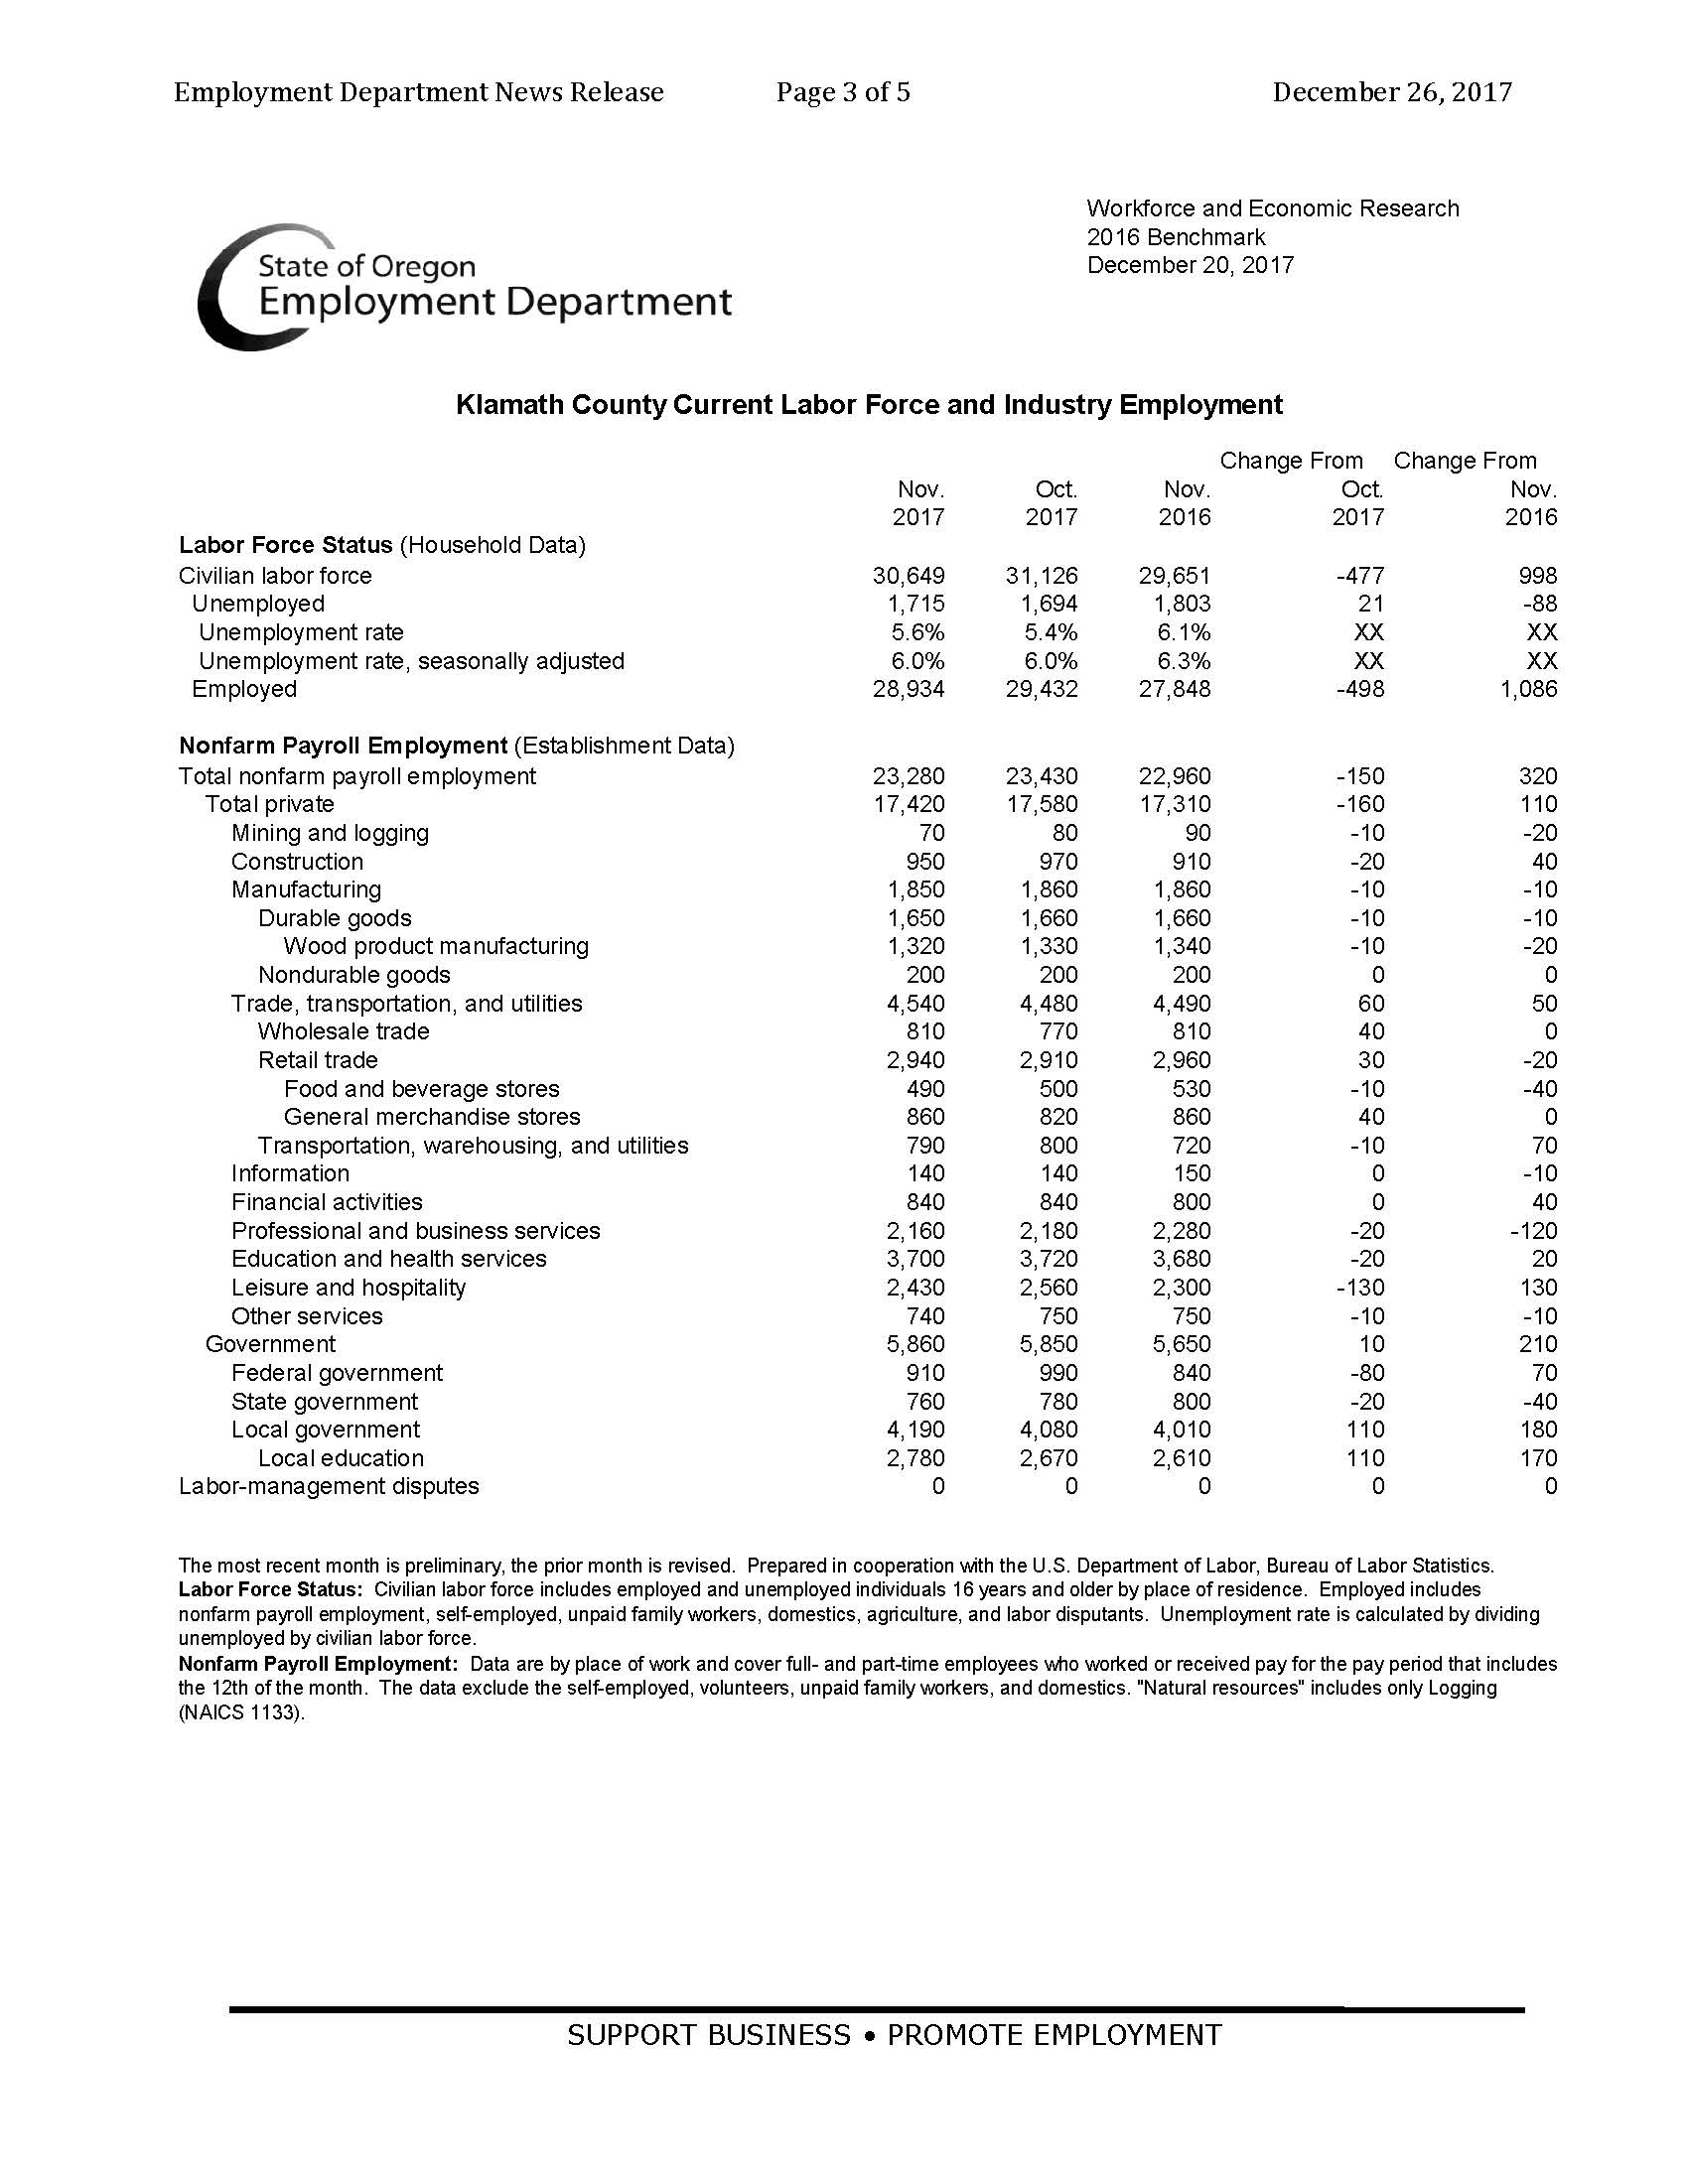 Employment in South Central Oregon_Page_3.jpg